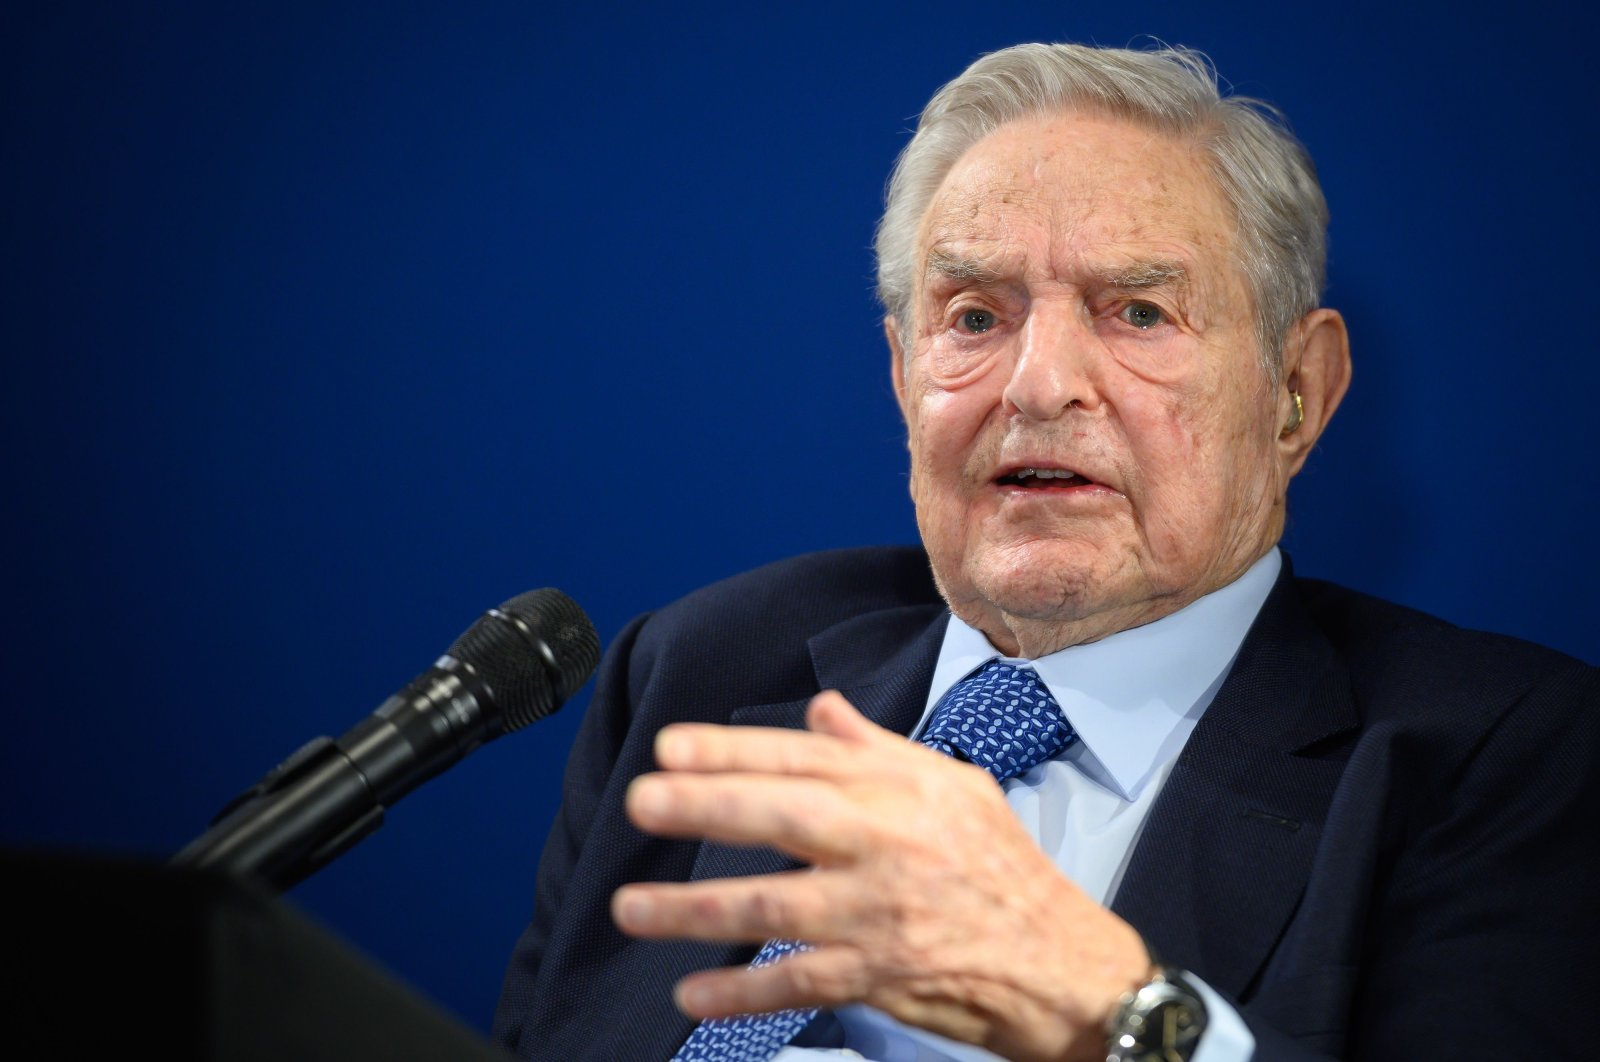 U.S. investor and philanthropist George Soros delivers a speech on the sideline of the World Economic Forum's (WEF) annual meeting in Davos, Switzerland, Jan. 23, 2020. (AFP Photo)